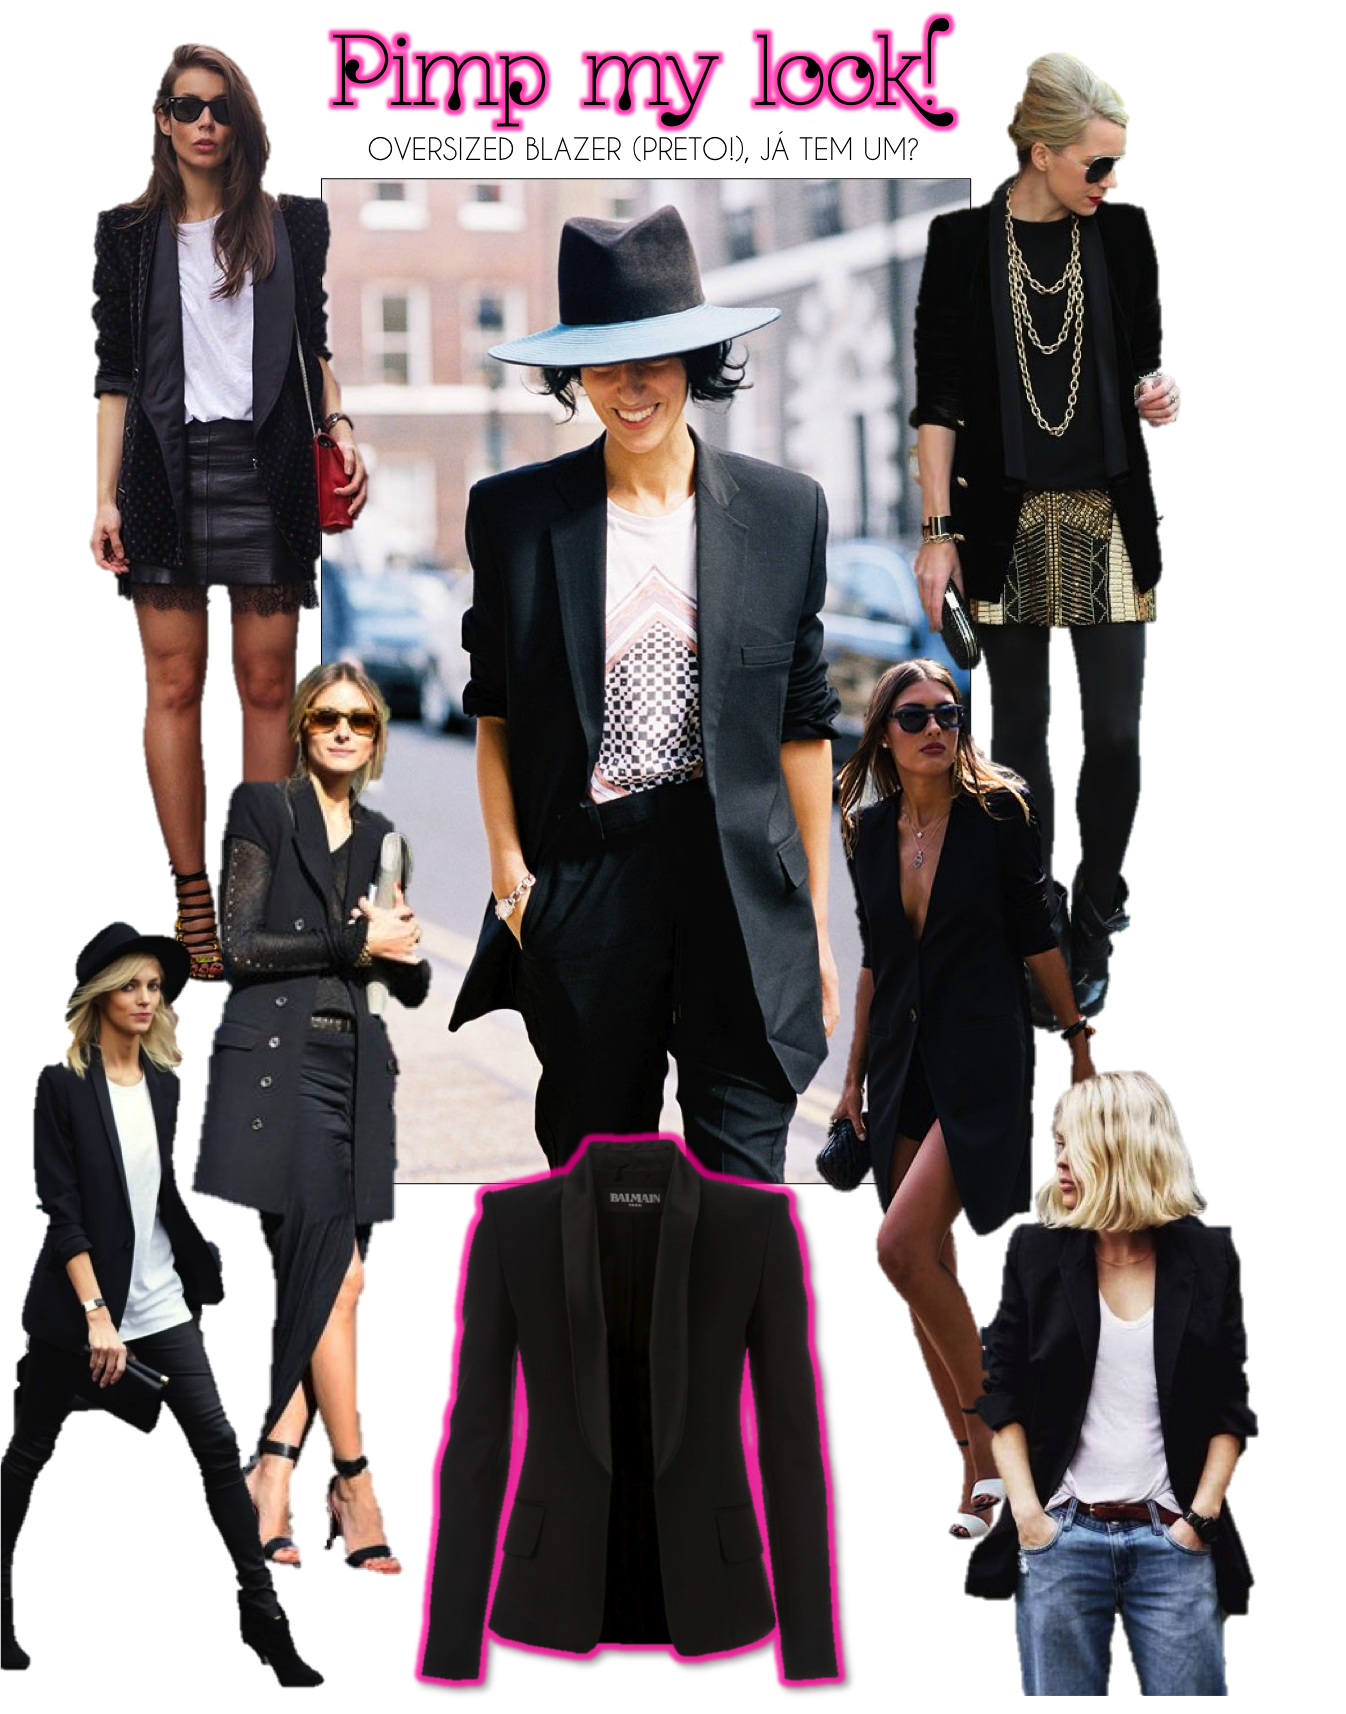 PIMP MY LOOK OVERSIZED BLAZER